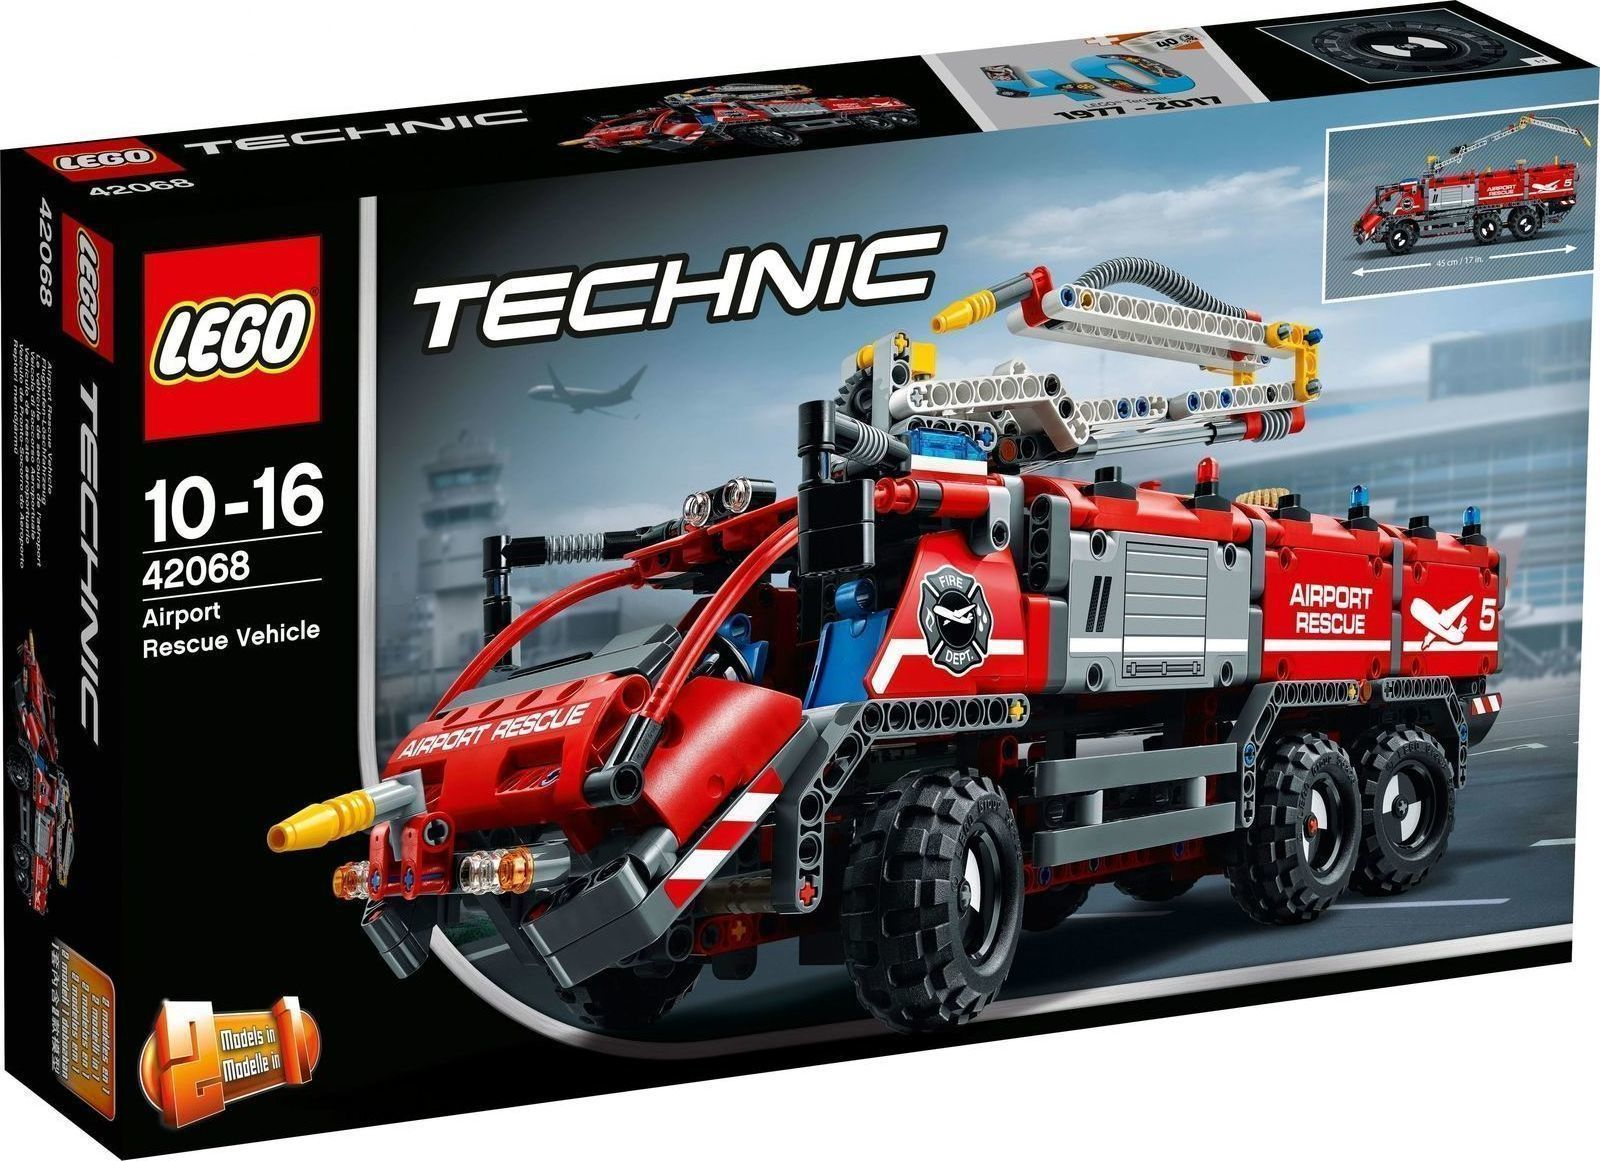 Lego Technic: Airport Rescue Vehicle 42068